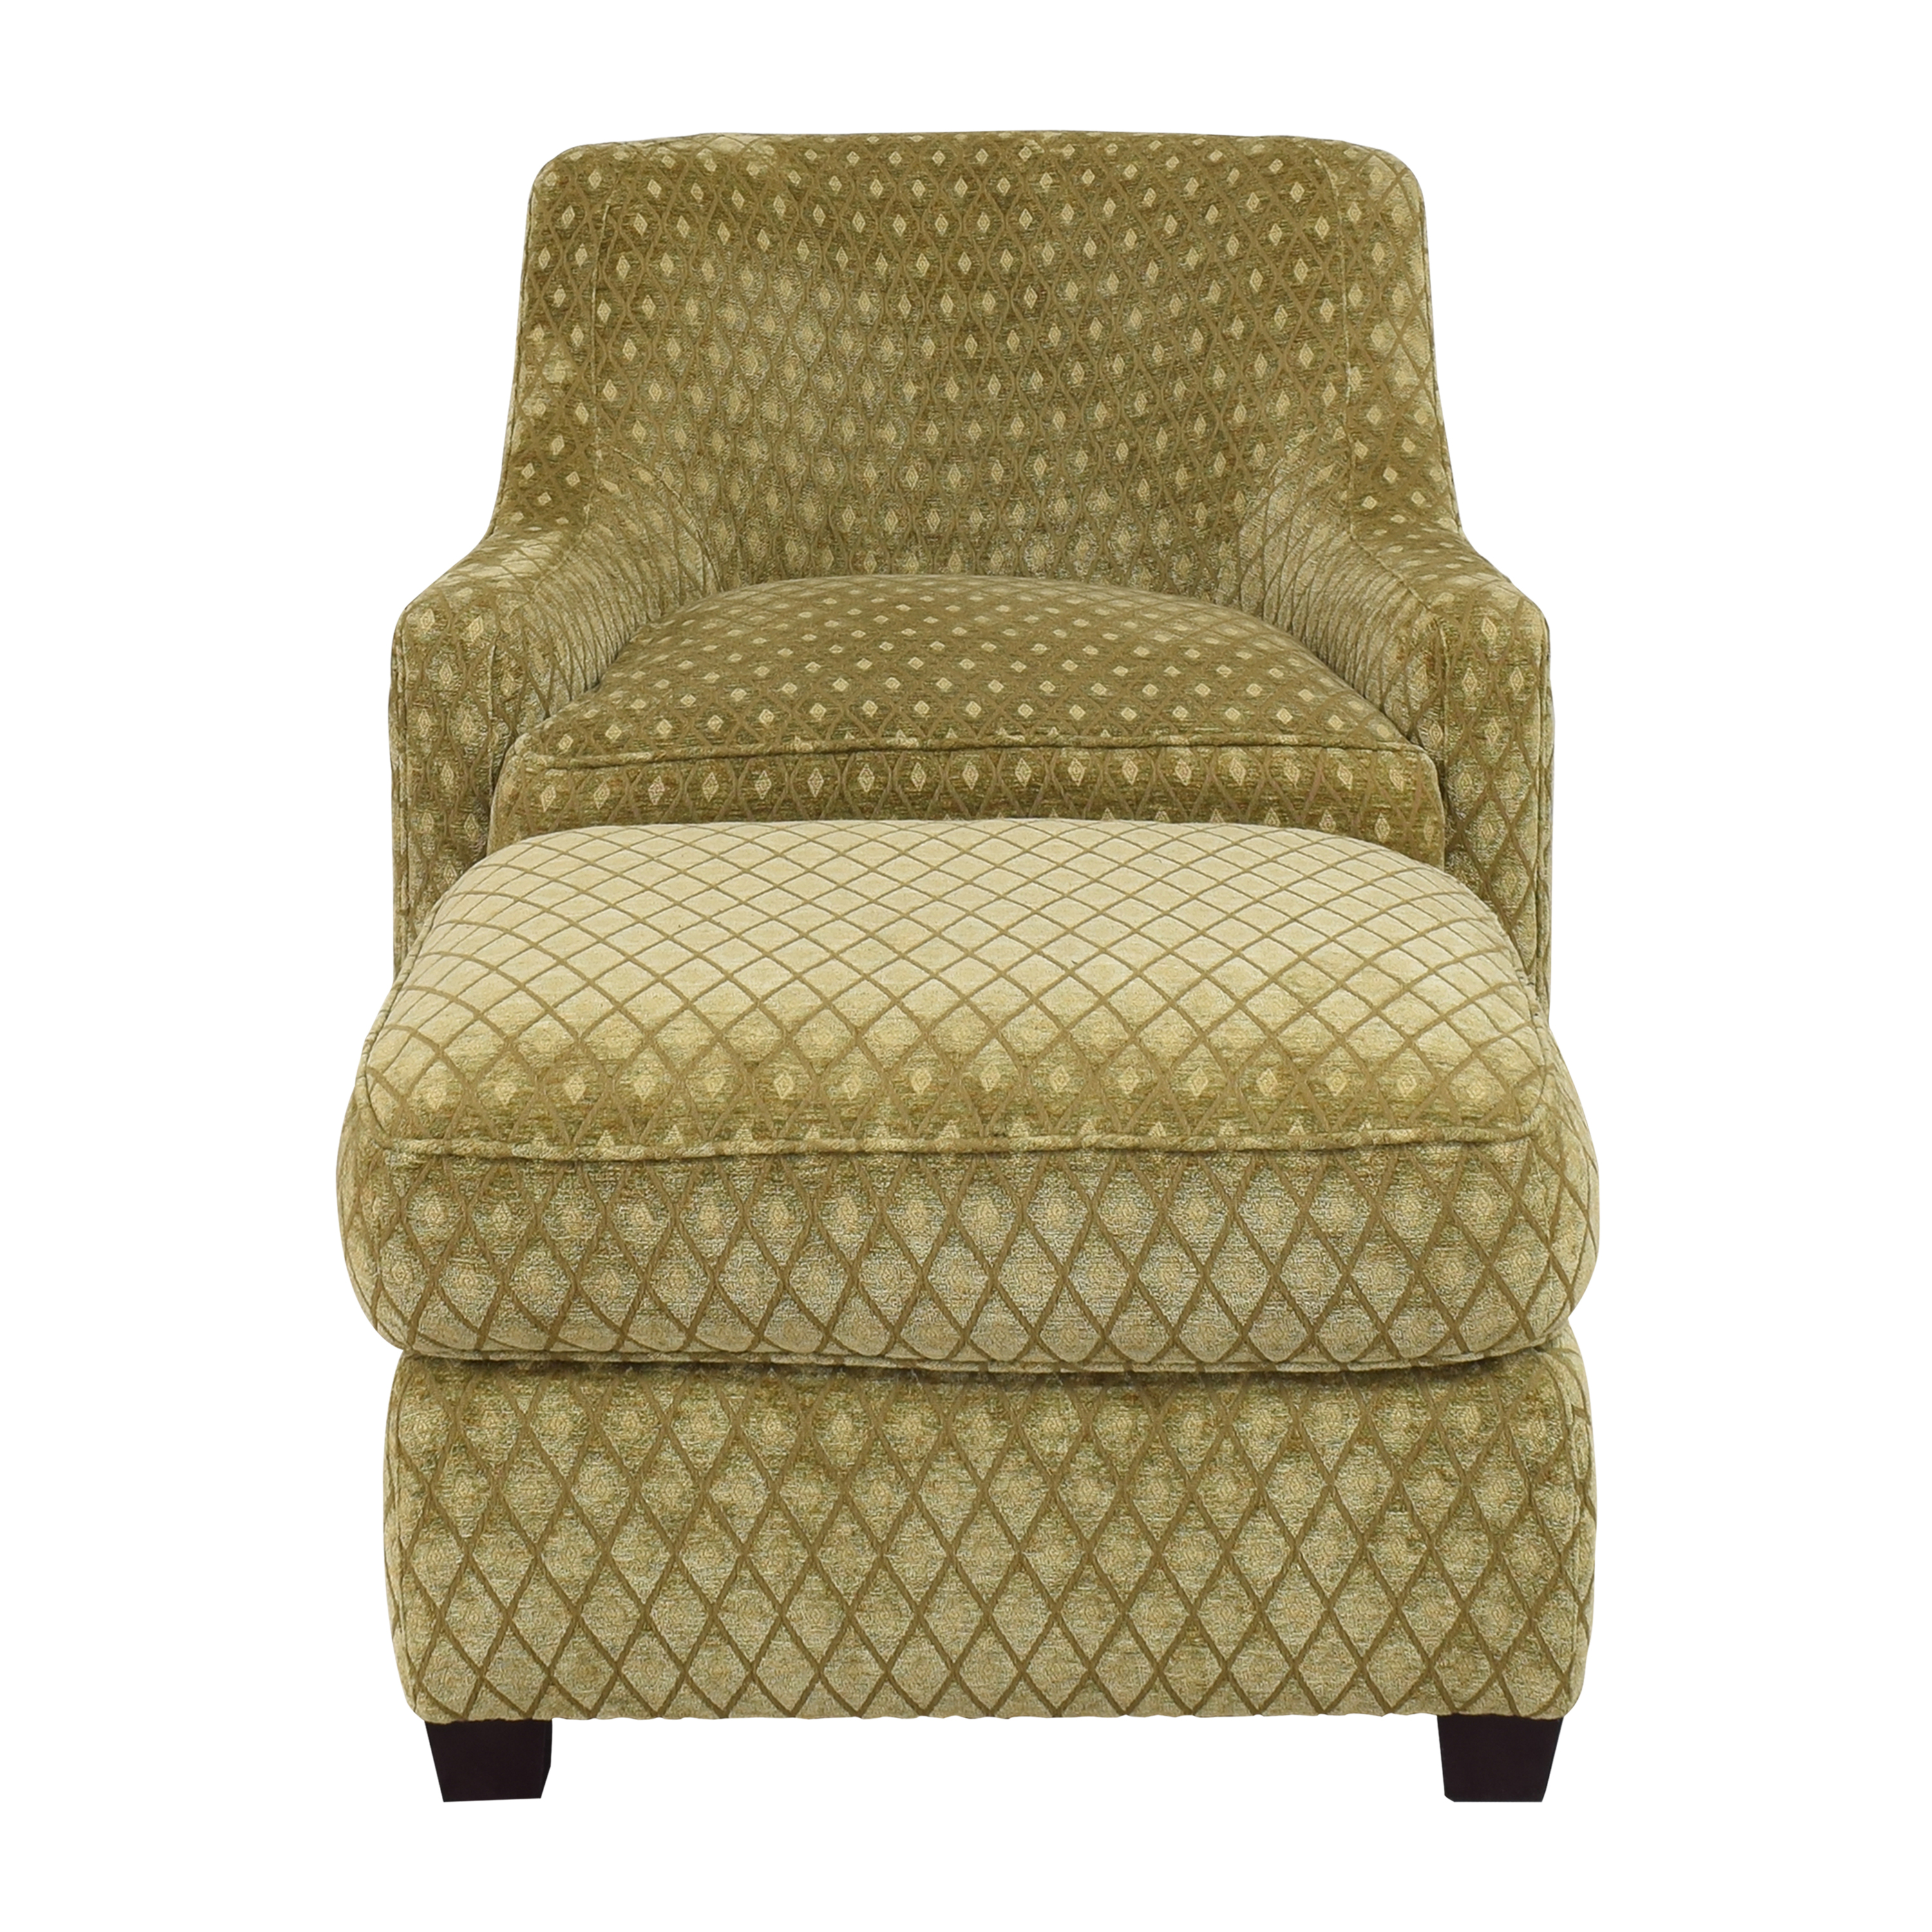 Baker Furniture Baker Furniture Accent Chair with Ottoman dimensions